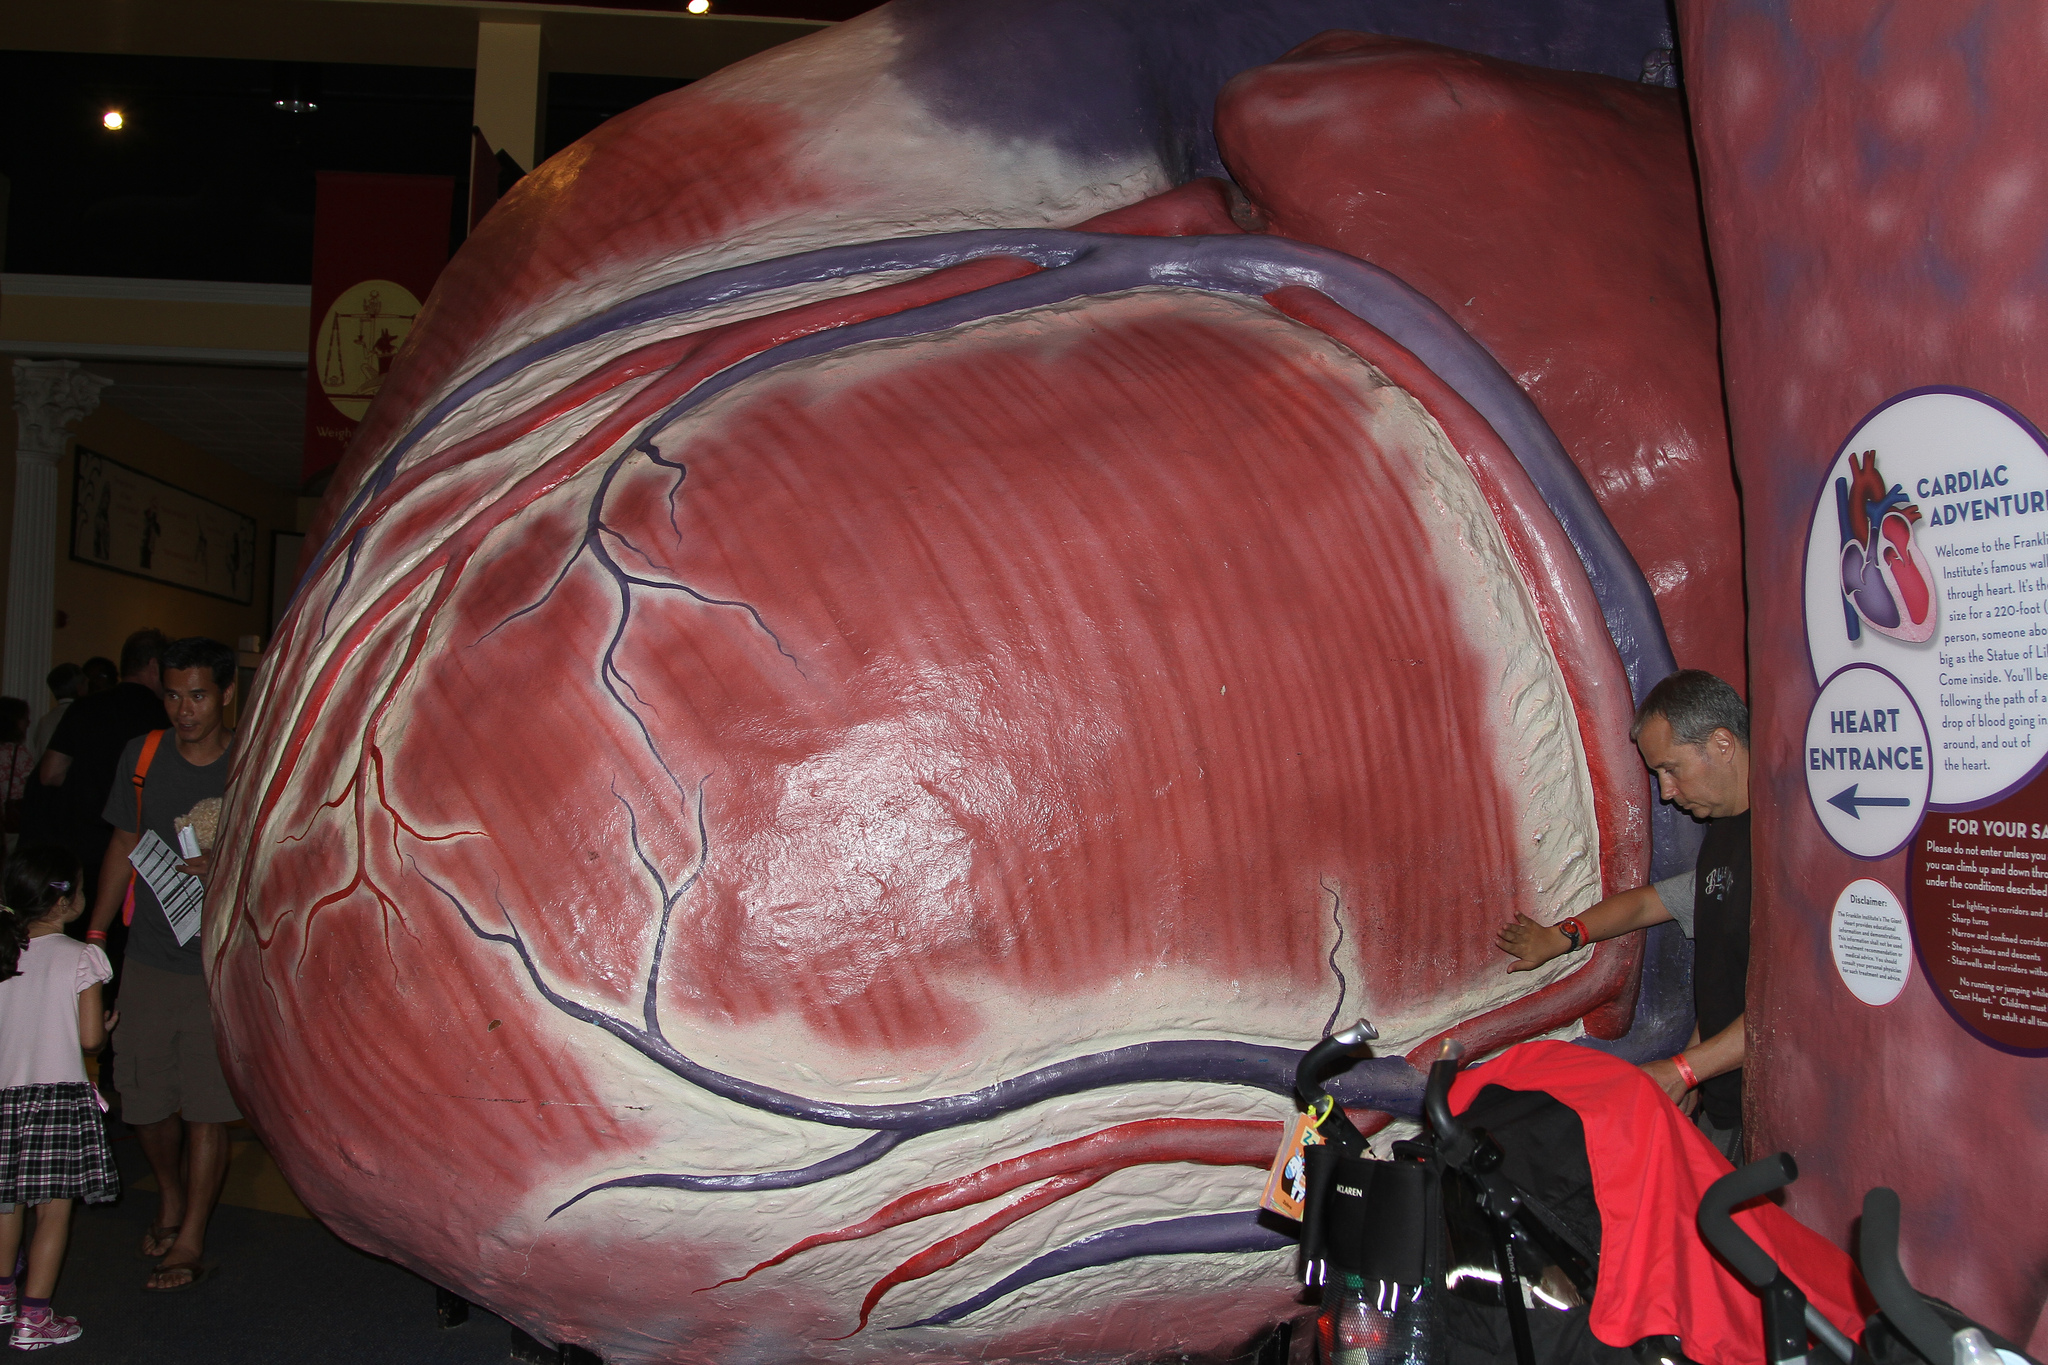 """Franklin Institute Heart"" by Jim, the Photographer via Flickr Creative Commons"